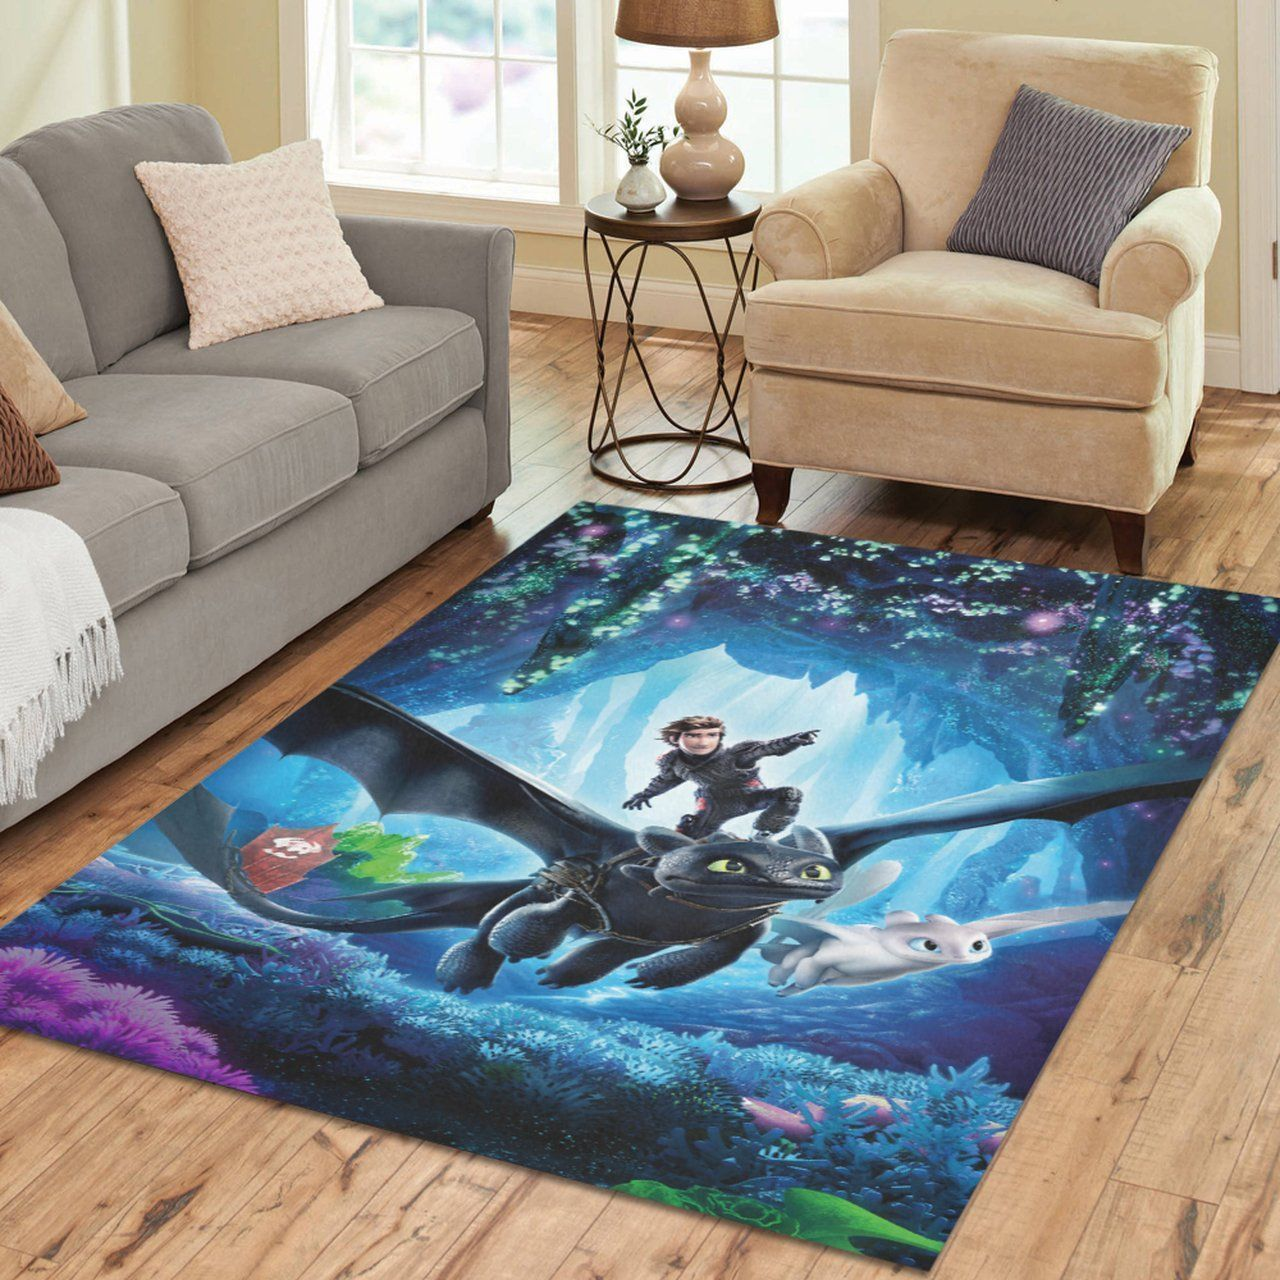 How To Train Your Dragon Area Rugs, Movie Living Room Carpet, Custom Floor Decor 101119